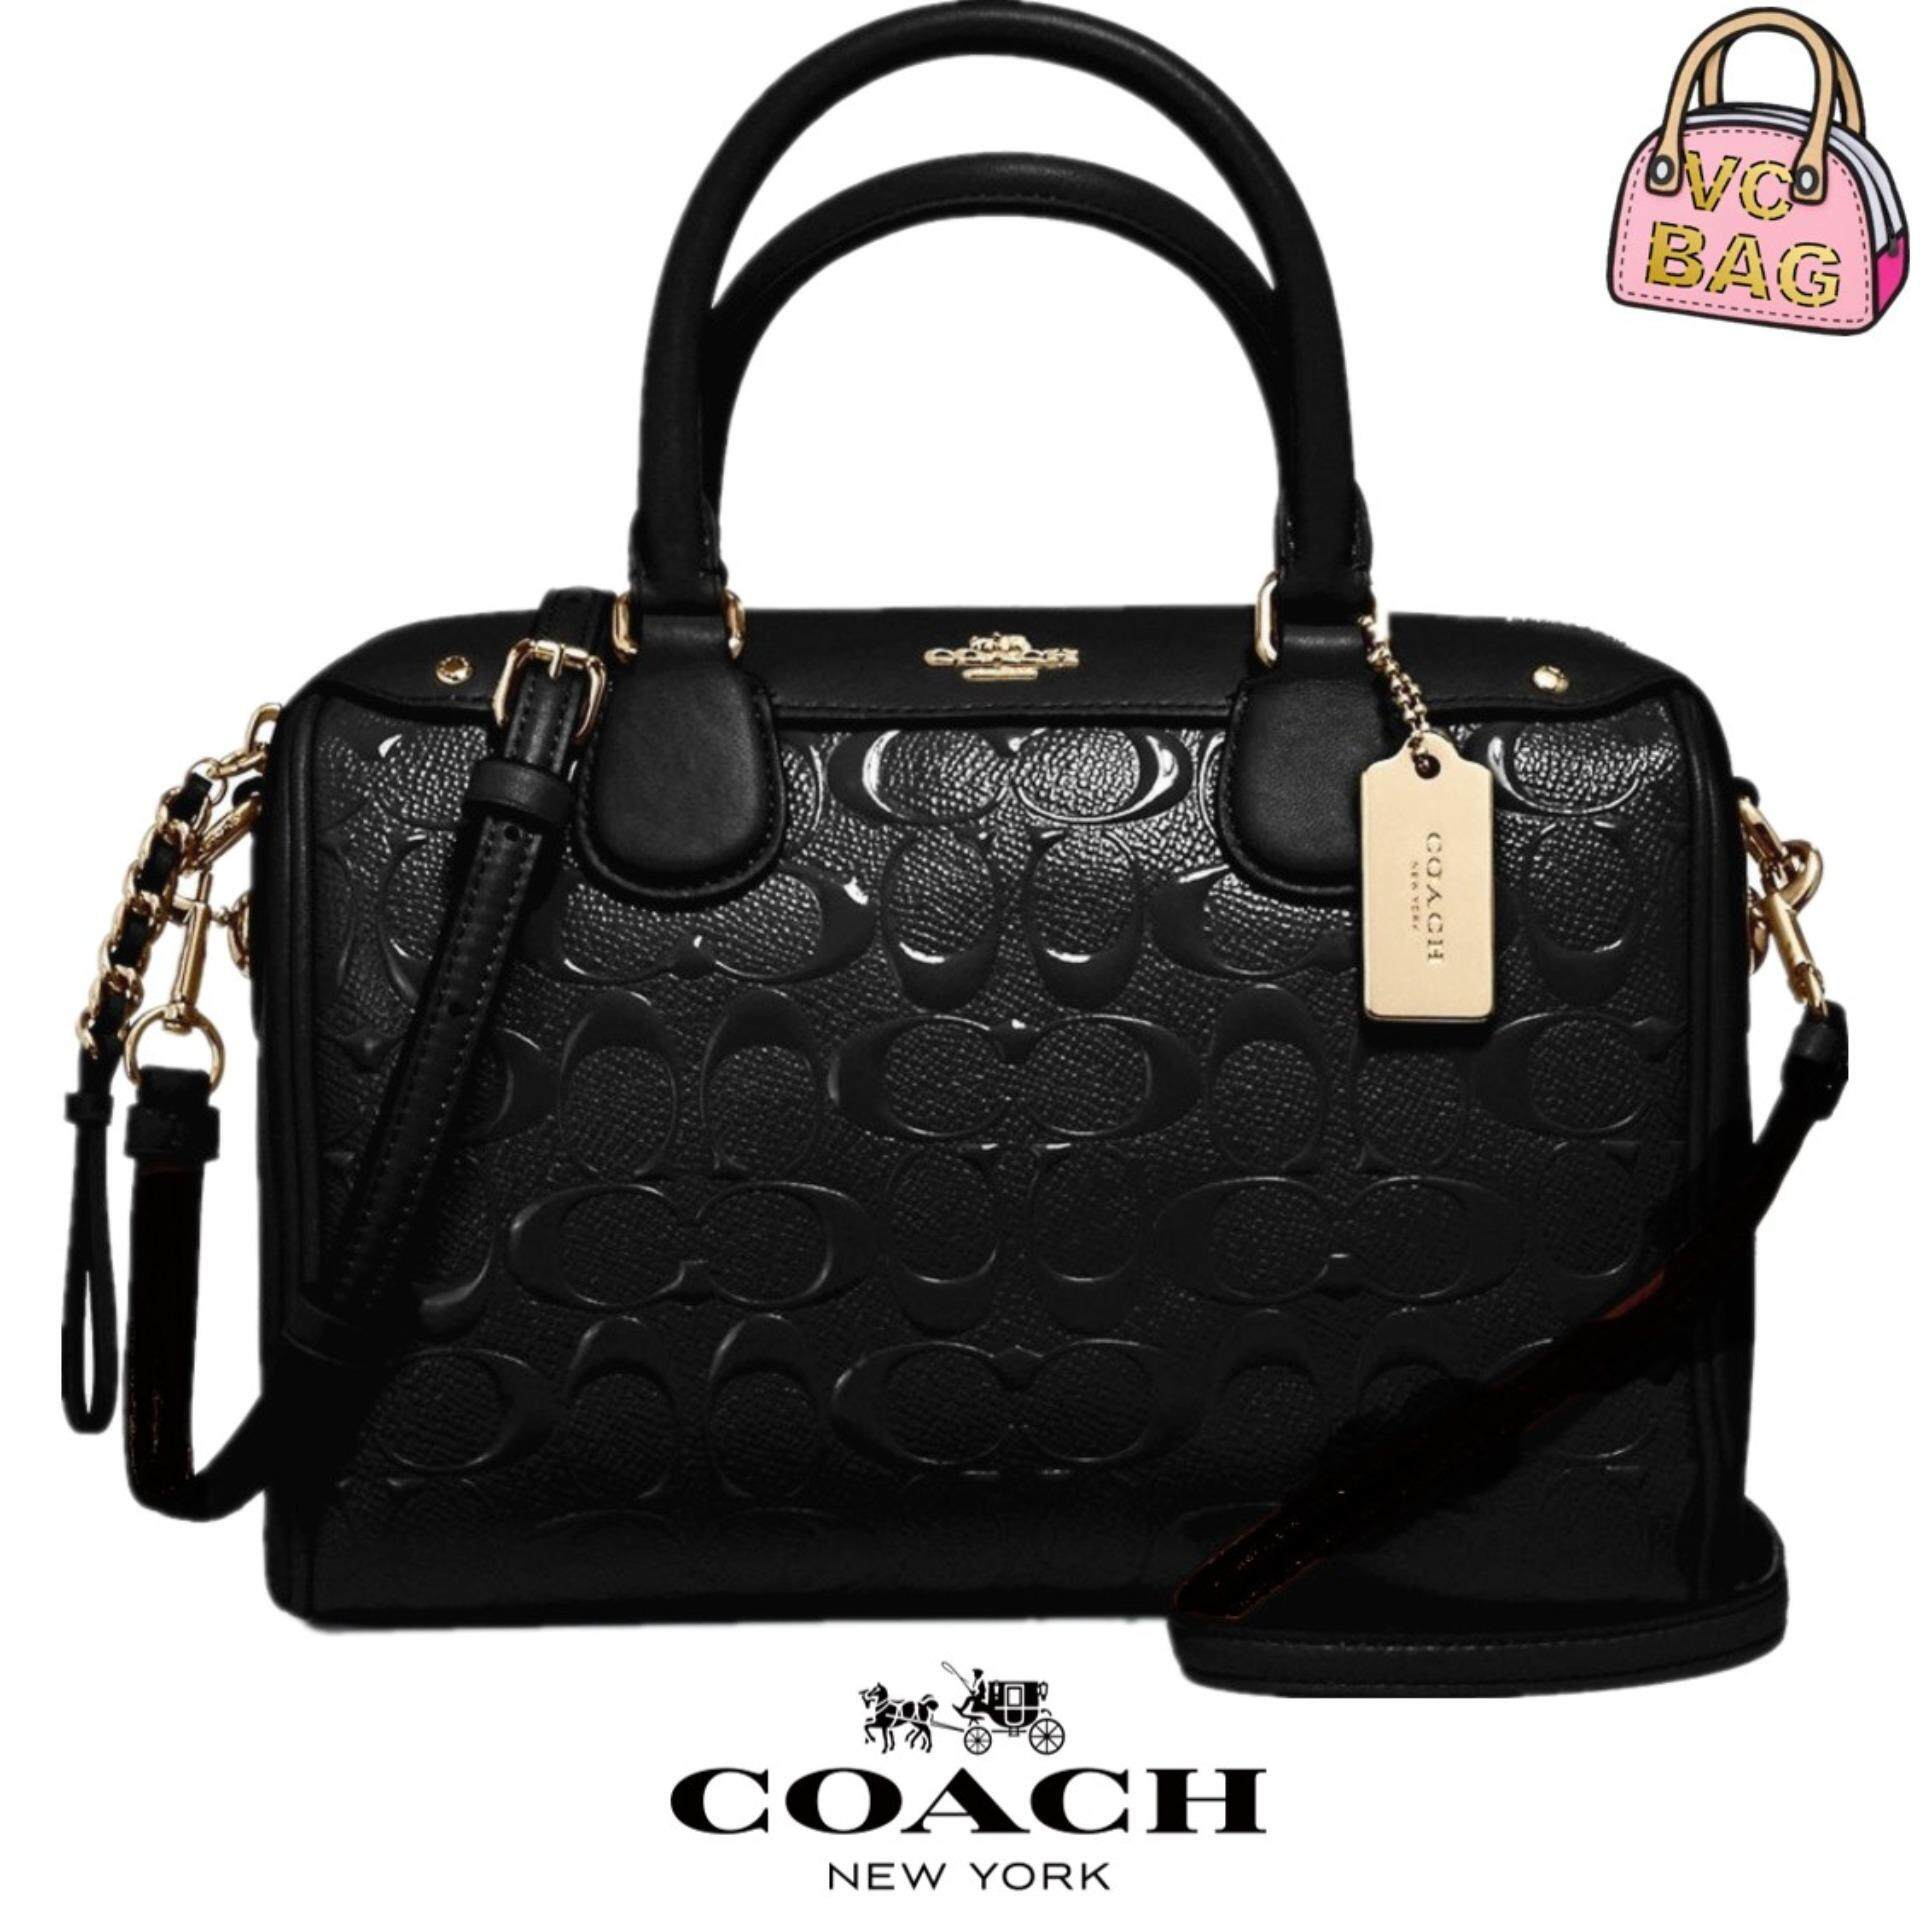 2a71482a8f2 COACH F11920 Mini Bennet Satchel in Signature Debossed Patent Leather Bag [Light  Gold/Black